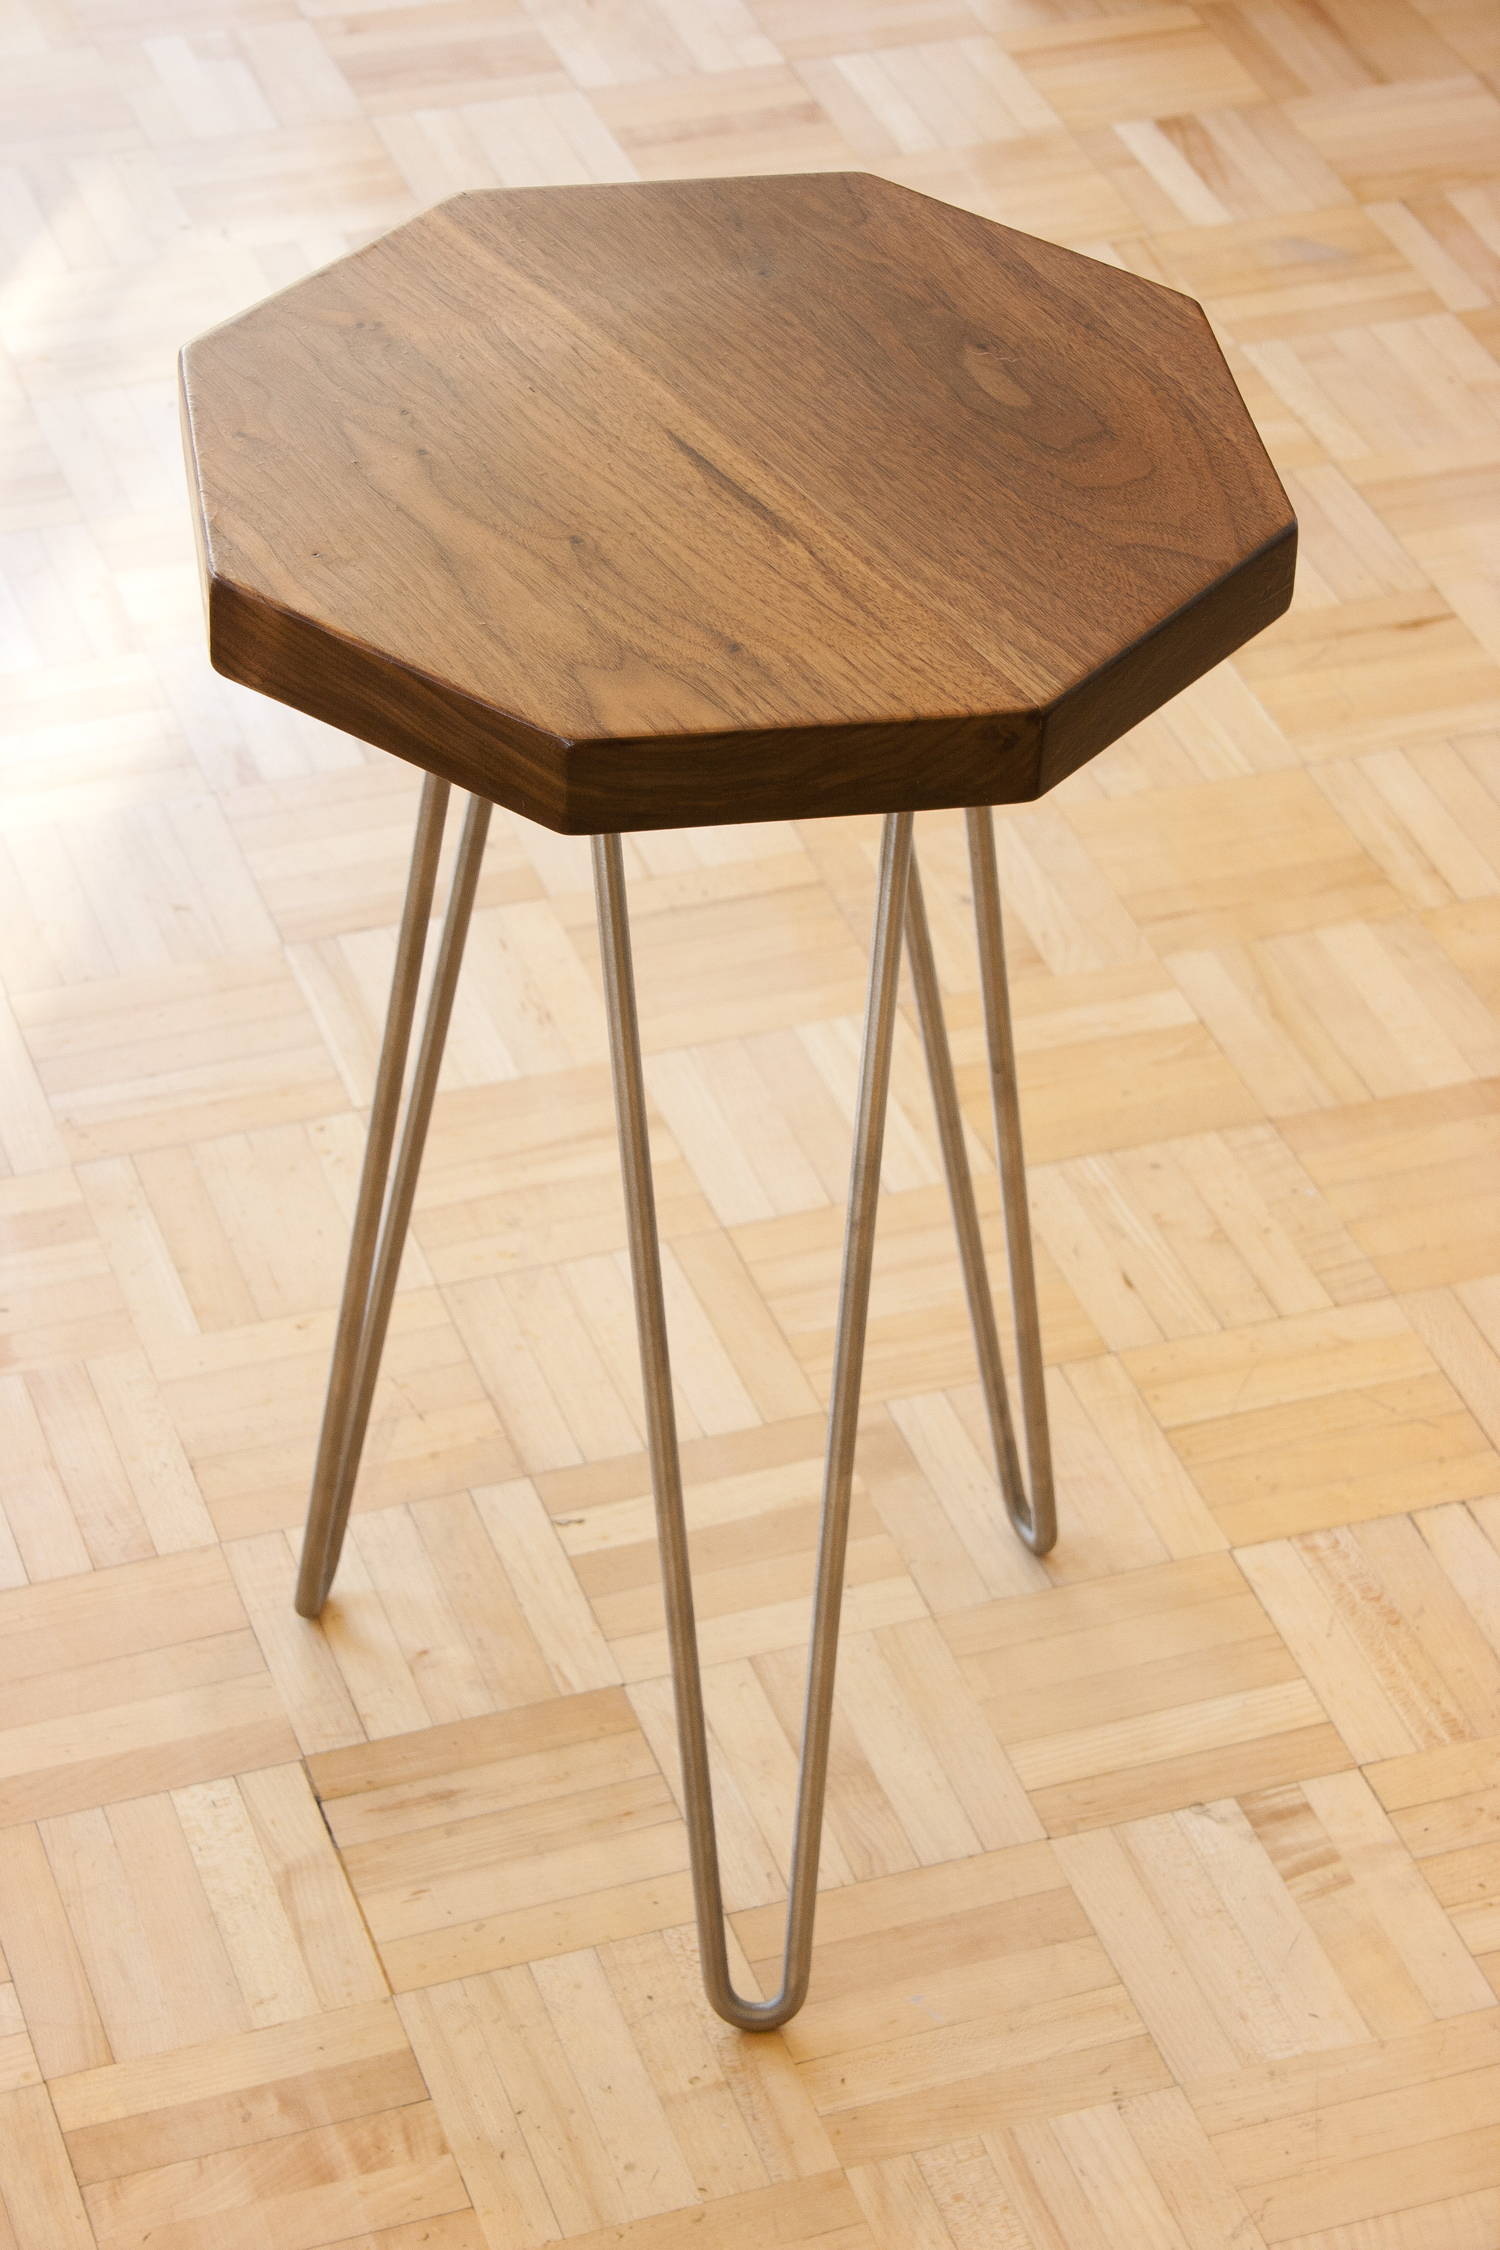 octagonal accent tables bay area custom furniture tira hairpin leg table solid walnut end with unique design completed brushed steel legs pottery barn wood and iron coffee black